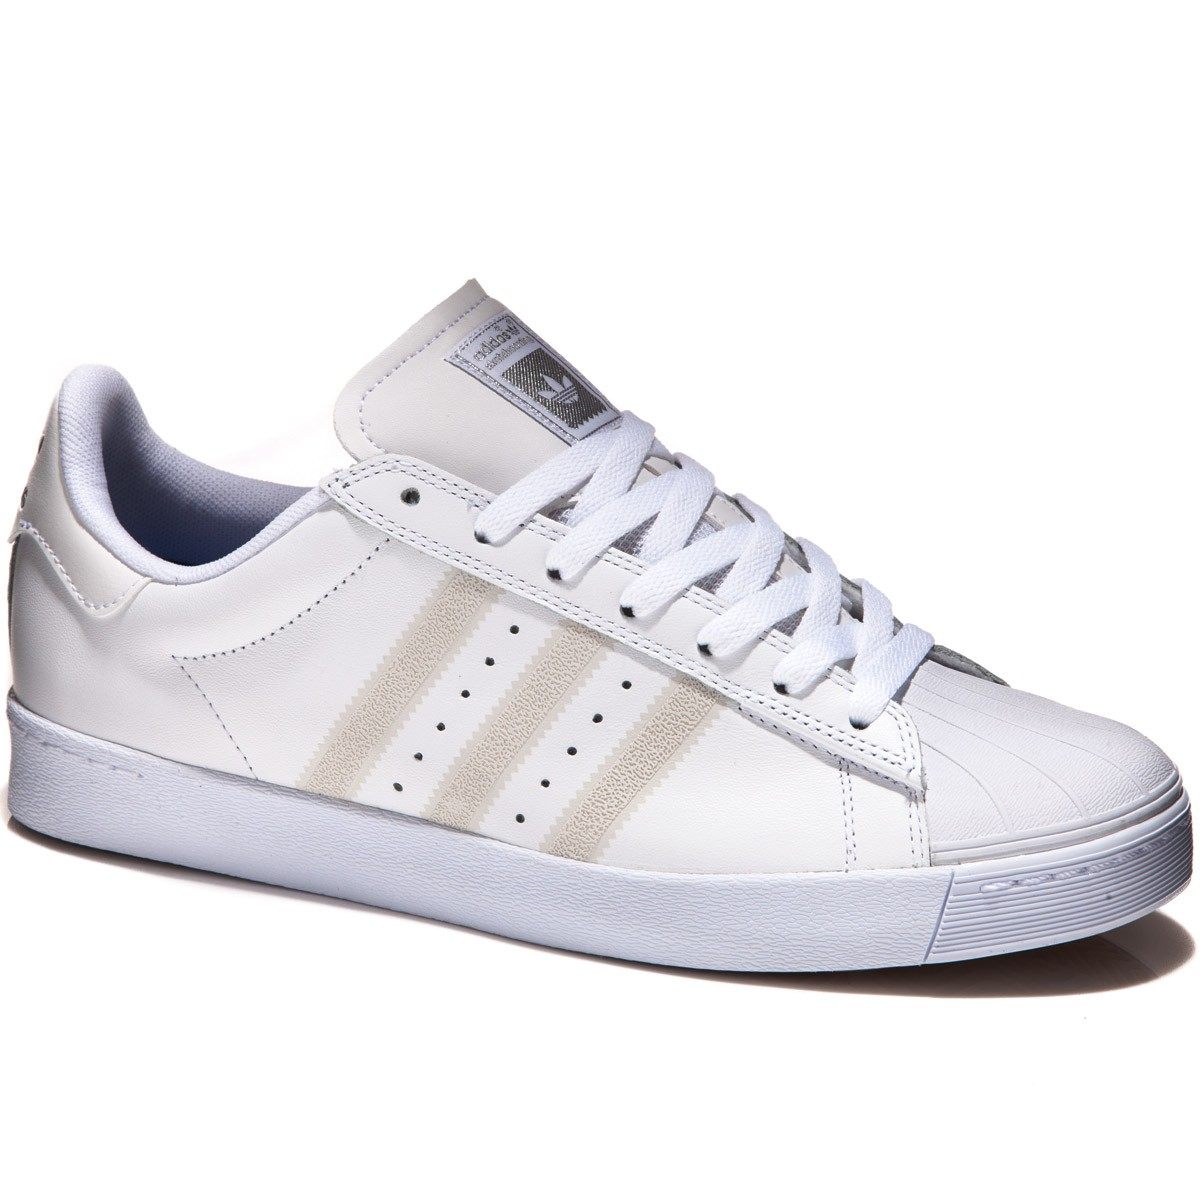 Blue Superstar Shoes ADV Cheap Adidas Belgium - BEVI